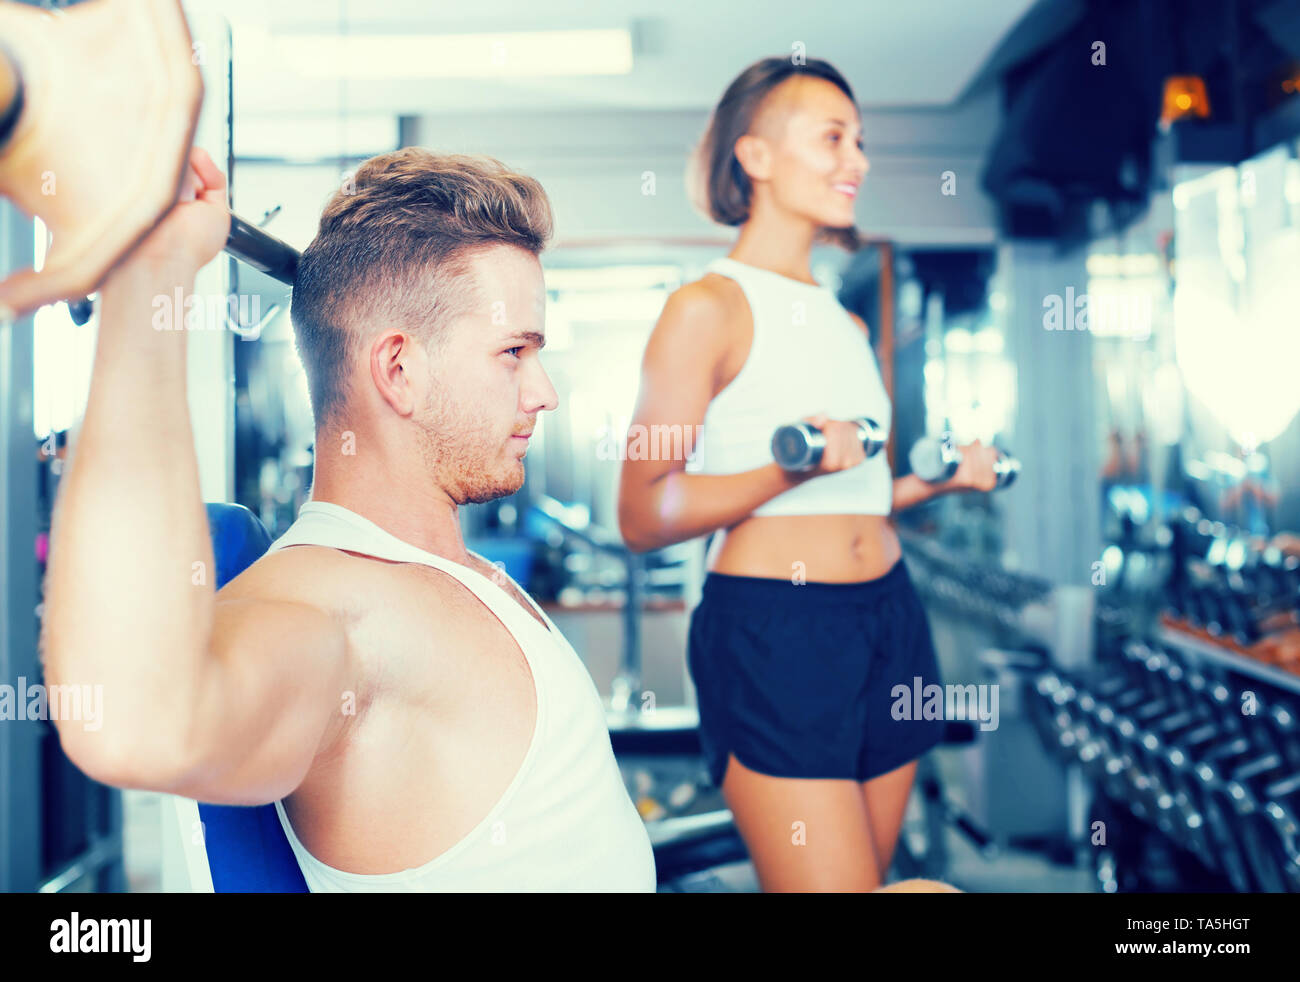 strong young man training upper body using barbell with heavy weights in gym - Stock Image